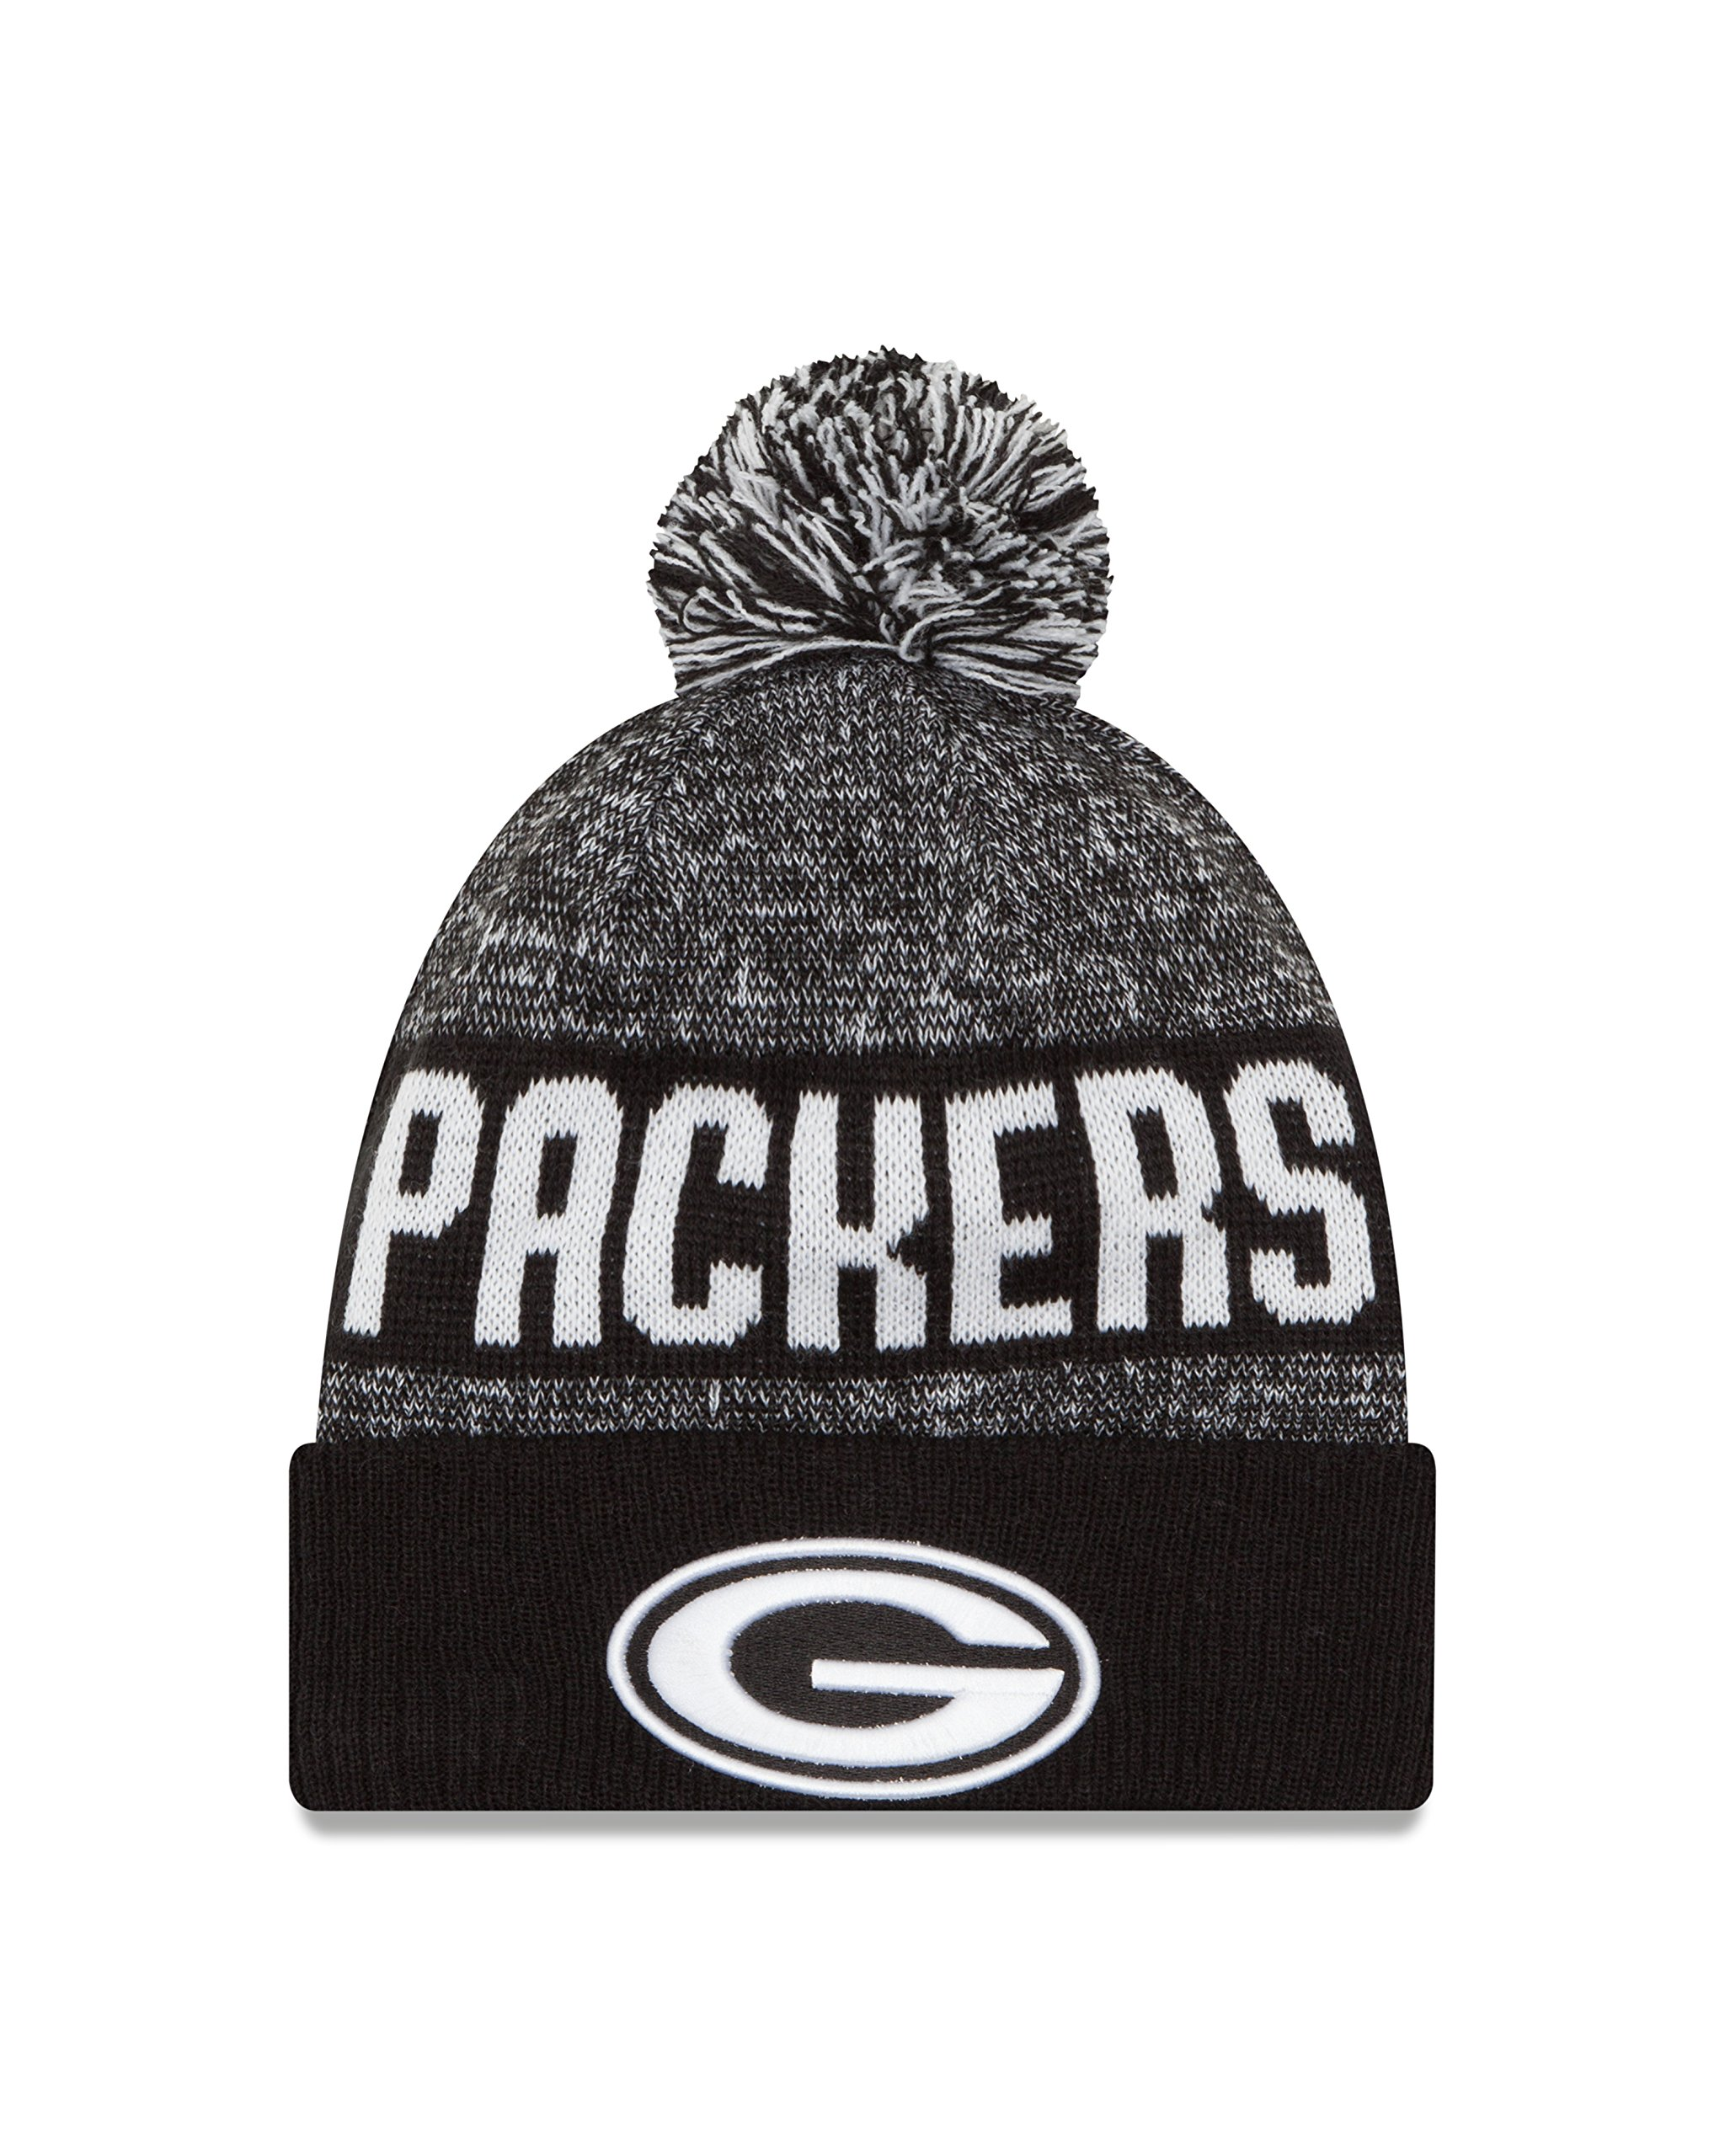 NFL Green Bay Packers 2016 Sport Knit Beanie, One Size, Black/White